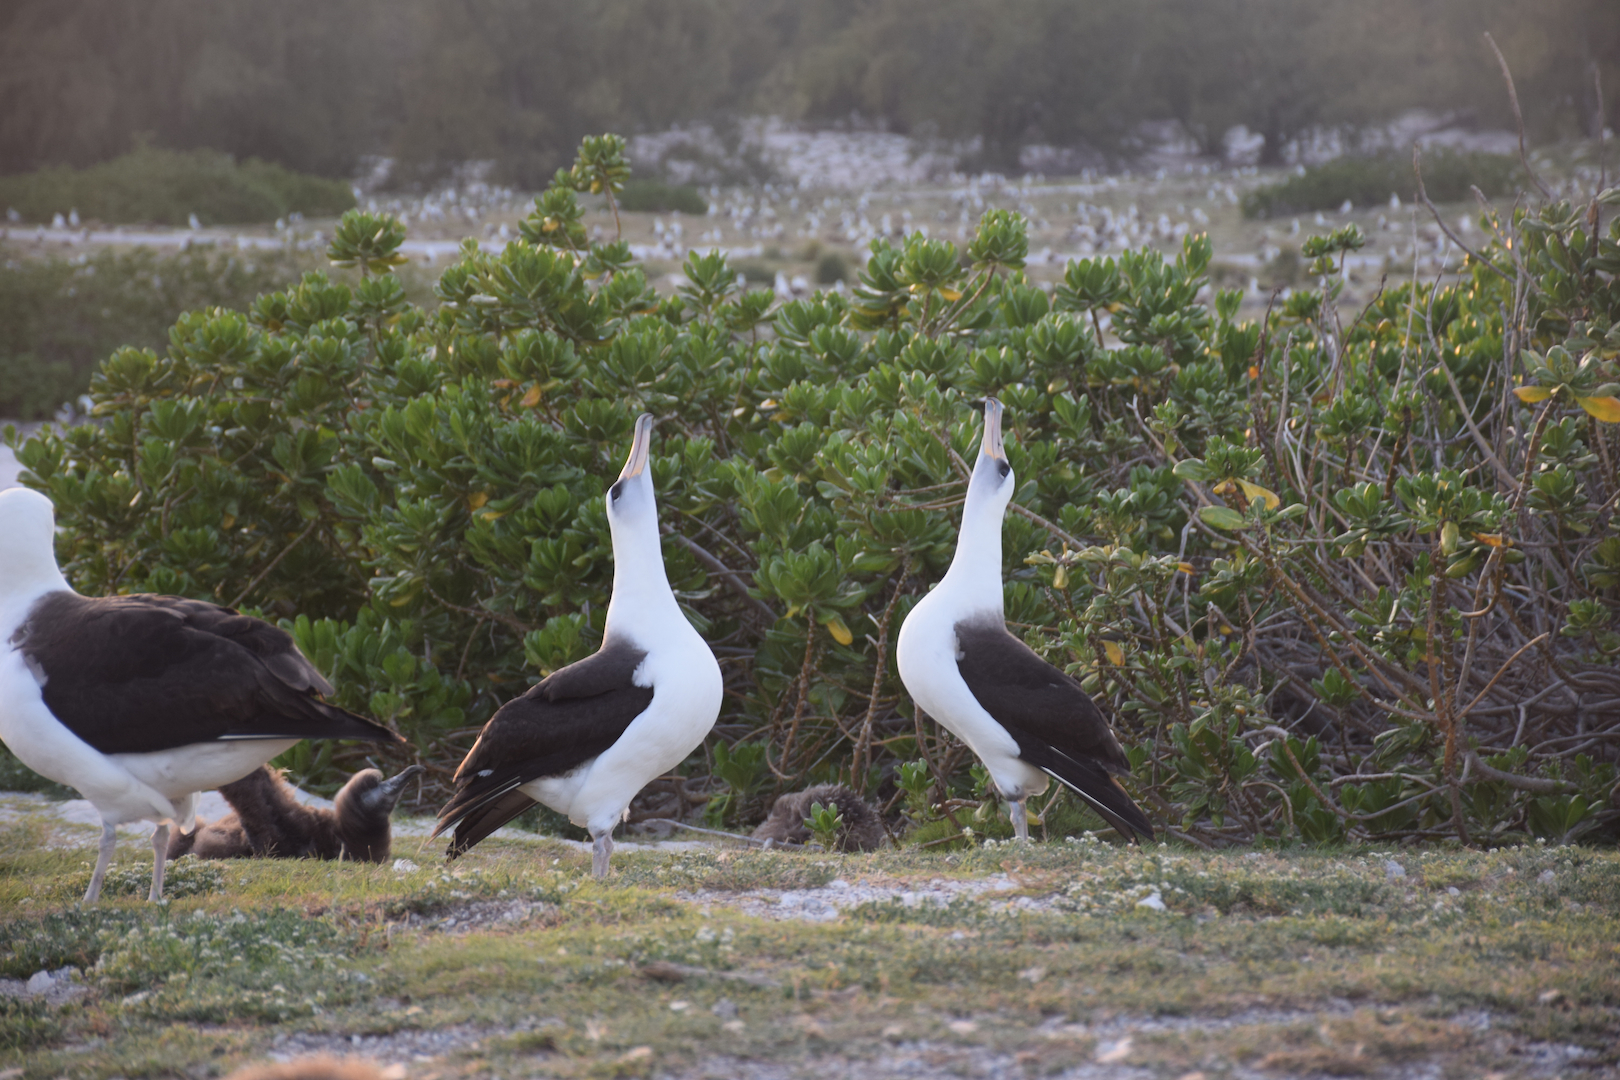 Midway, Atoll, Albatross, dance, mating, courtship, kissing, birds